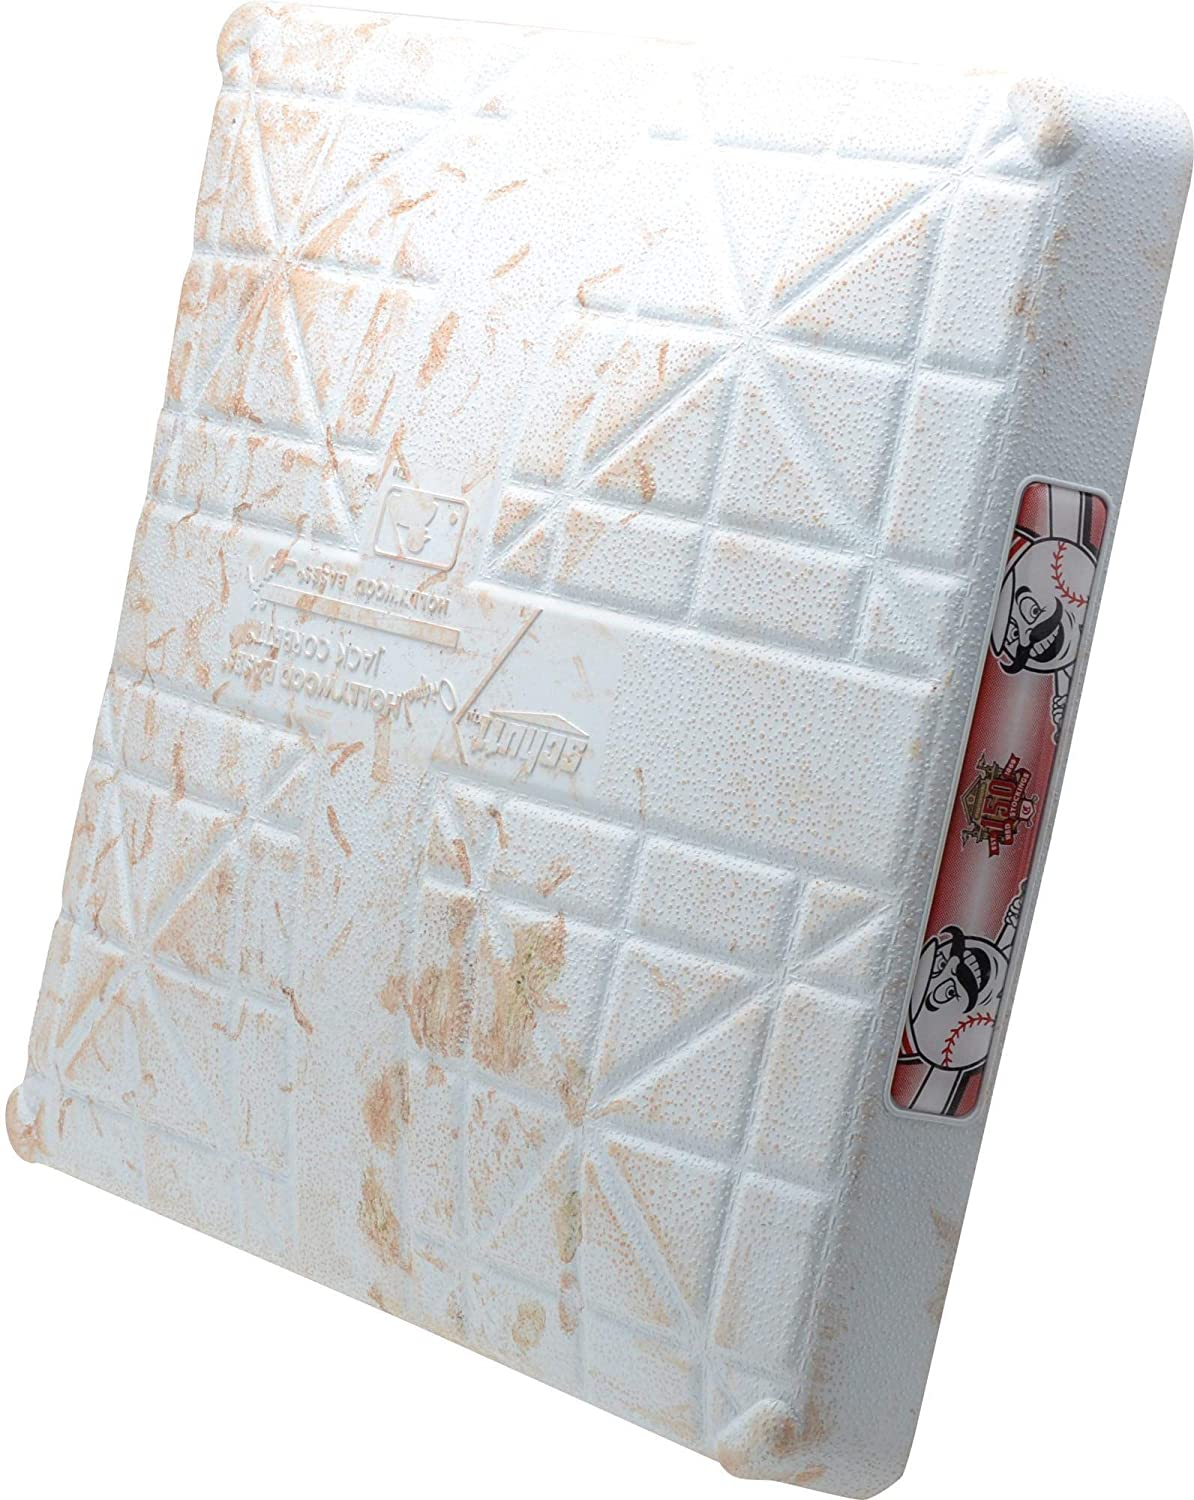 Cincinnati Reds Game-Used 1st Base vs. St. Louis Cardinals on July 18, 2019 - Innings 5-9 - Fanatics Authentic Certified